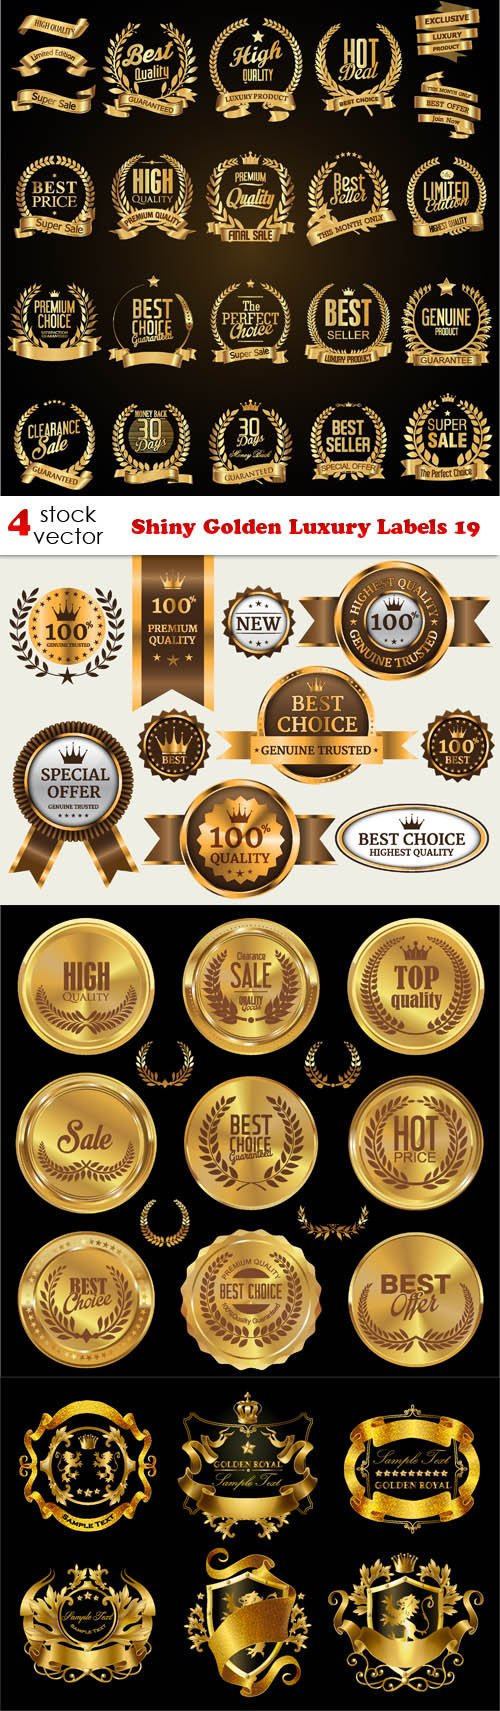 Vectors - Shiny Golden Luxury Labels 19